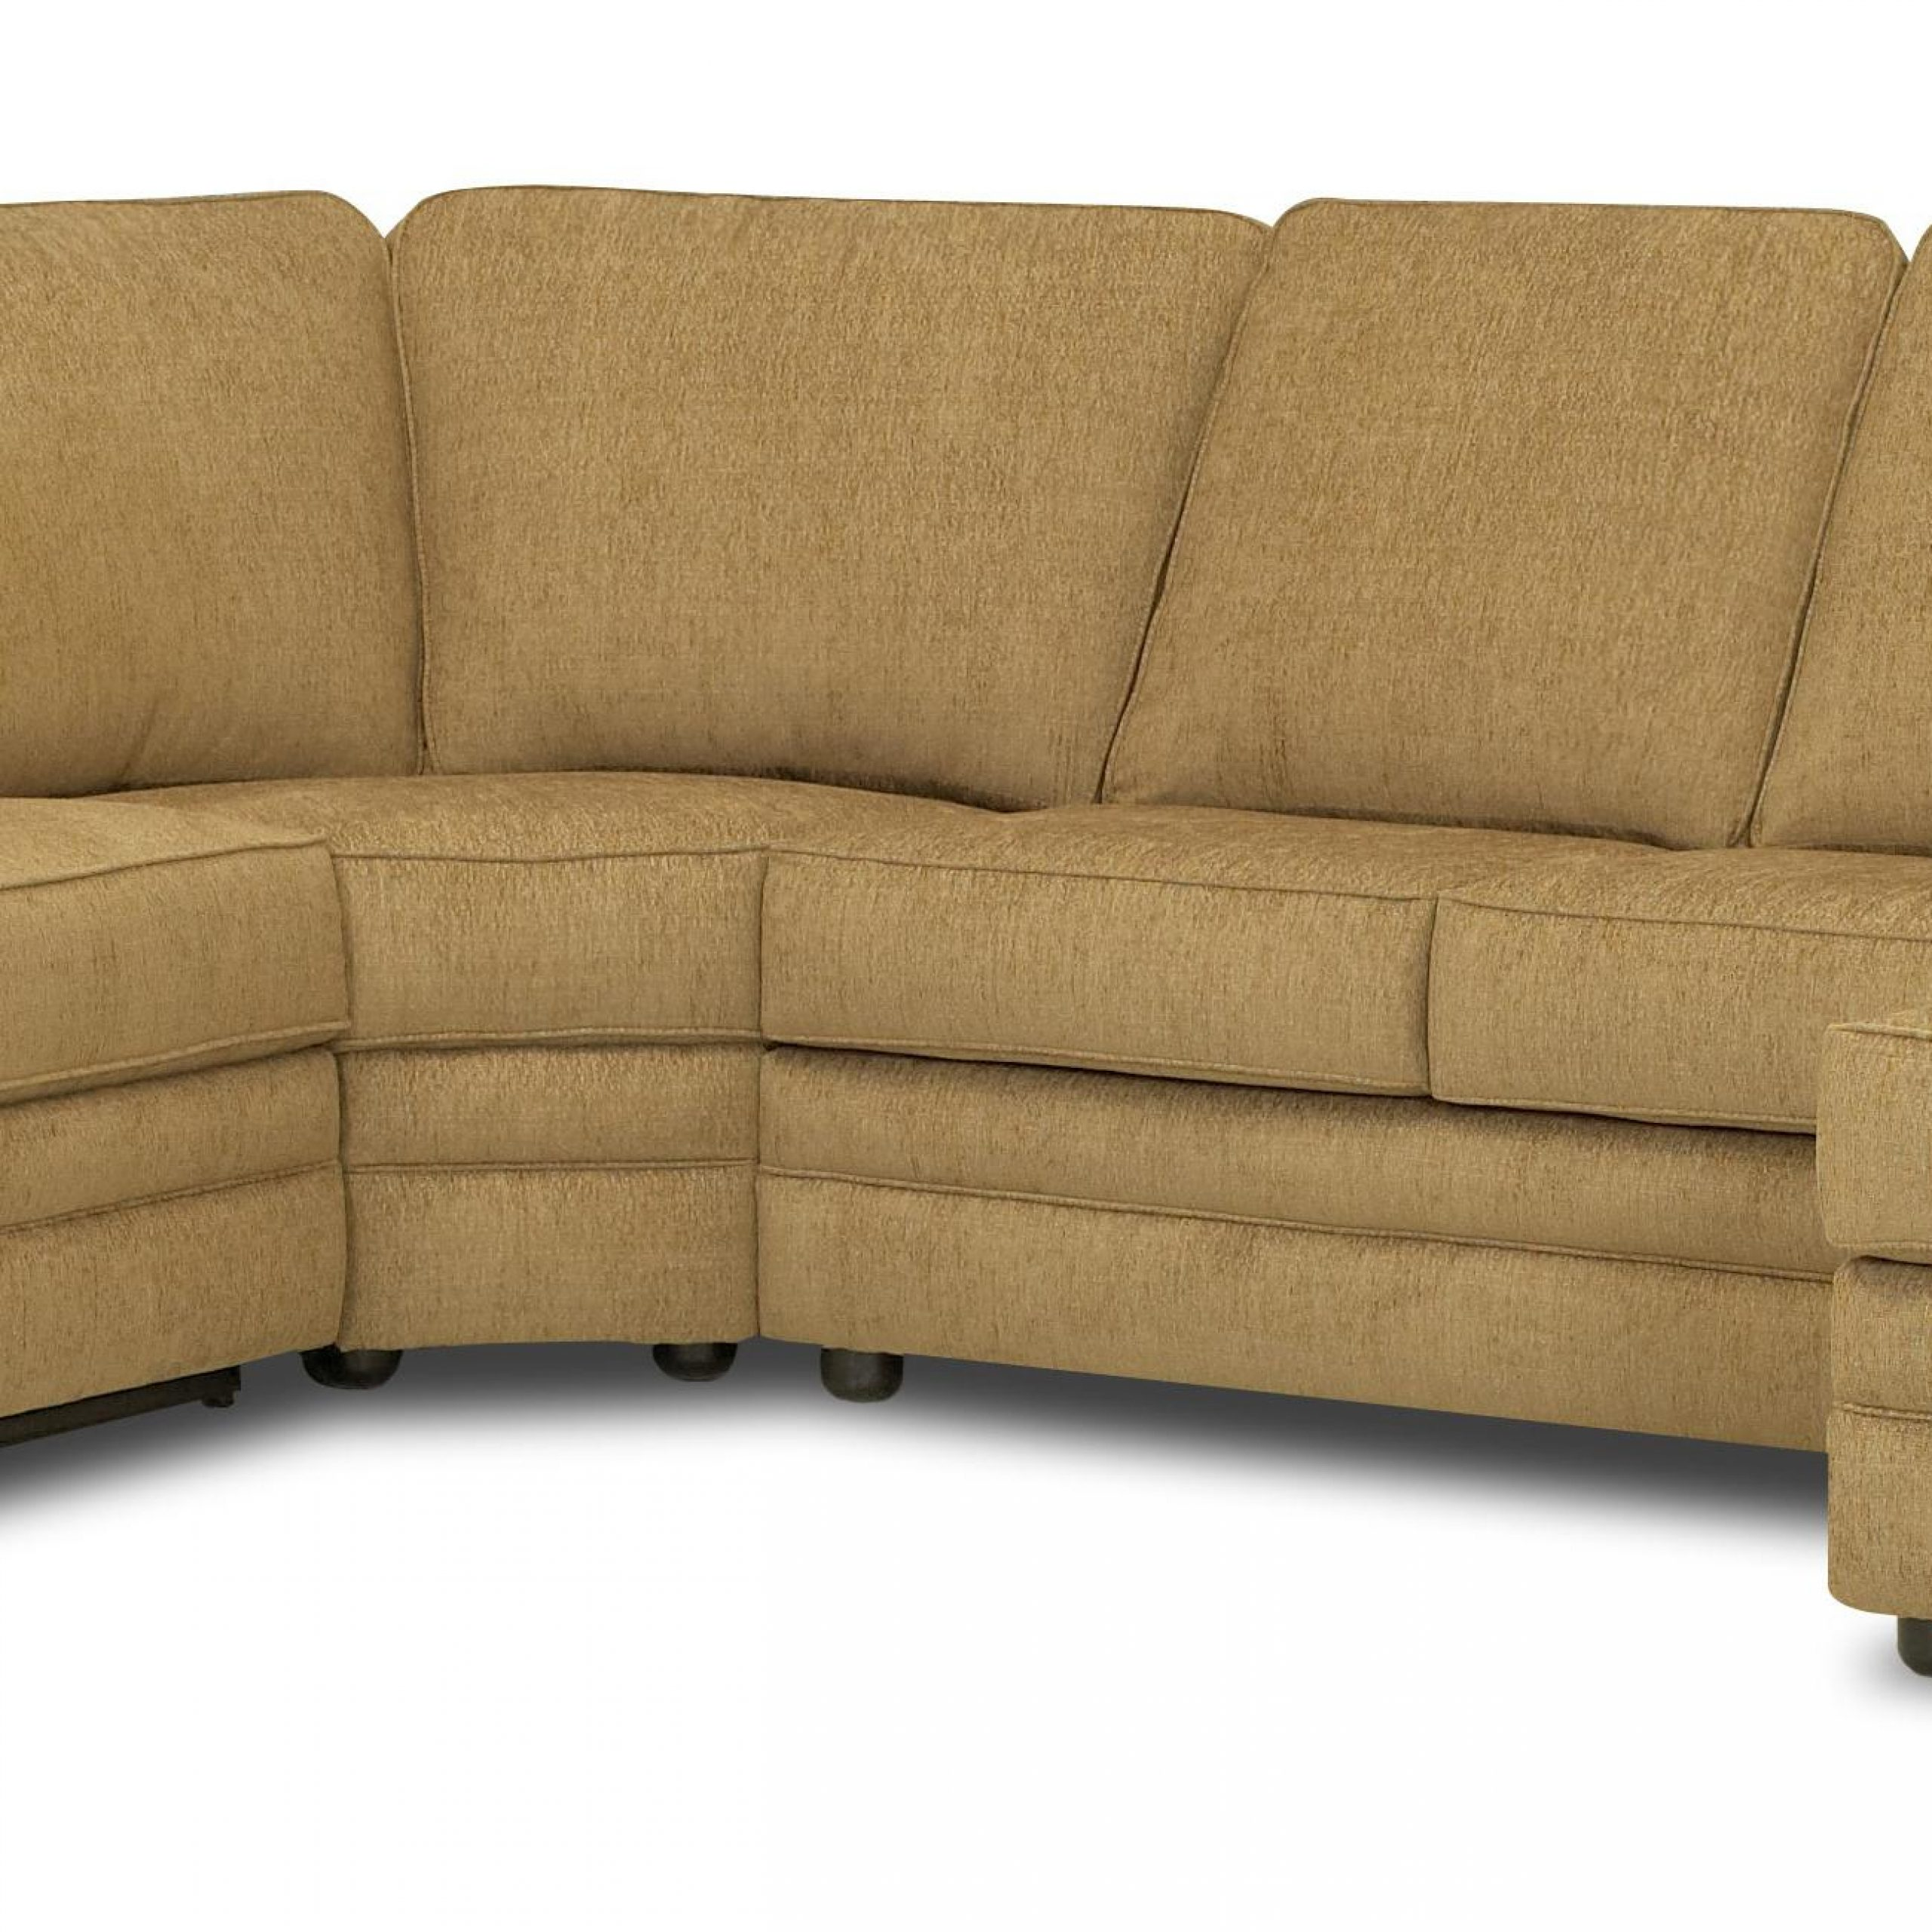 Most Recent Copenhagen Reclining Sectional Sofas With Left Storage Chaise With Regard To Reclining Sectional With Left Side Chaiseklaussner (View 21 of 25)